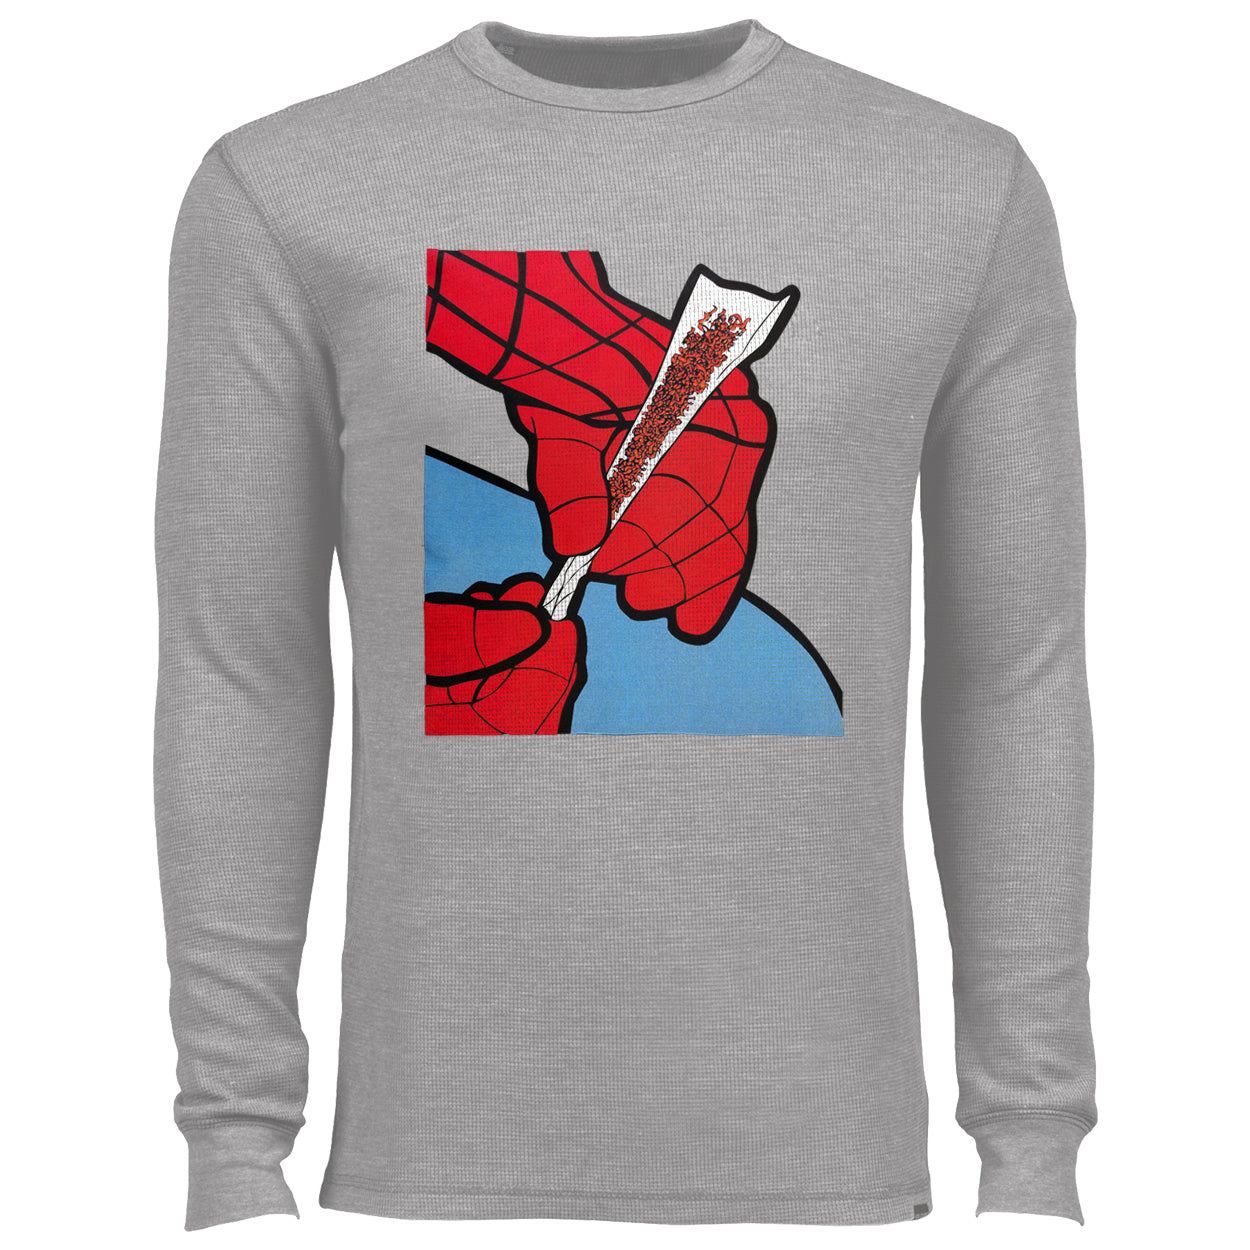 Cartoon Spider Hands Rolling Up Thermal Shirt